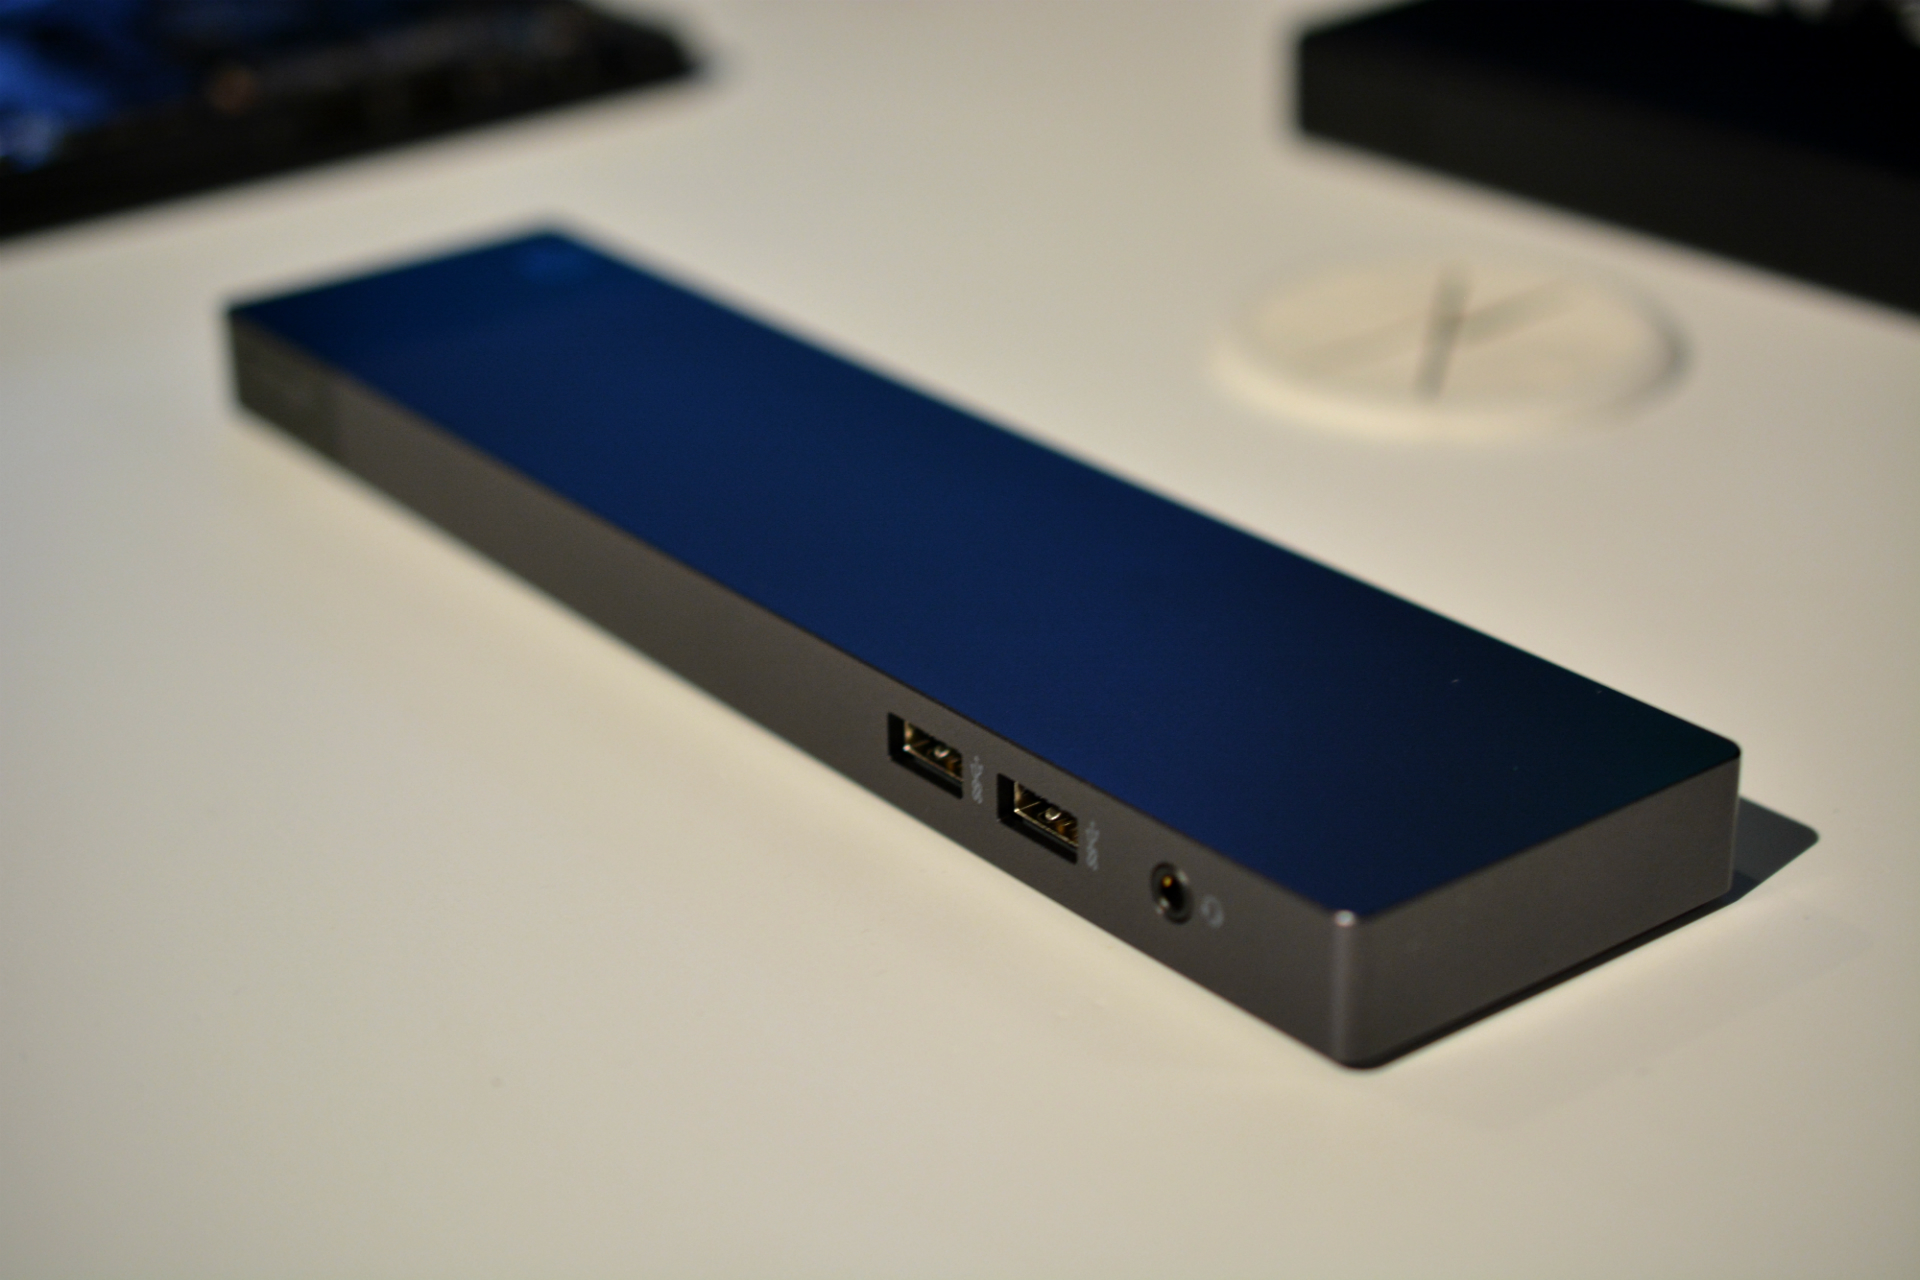 HP's new $299 Thunderbolt 3 dock.